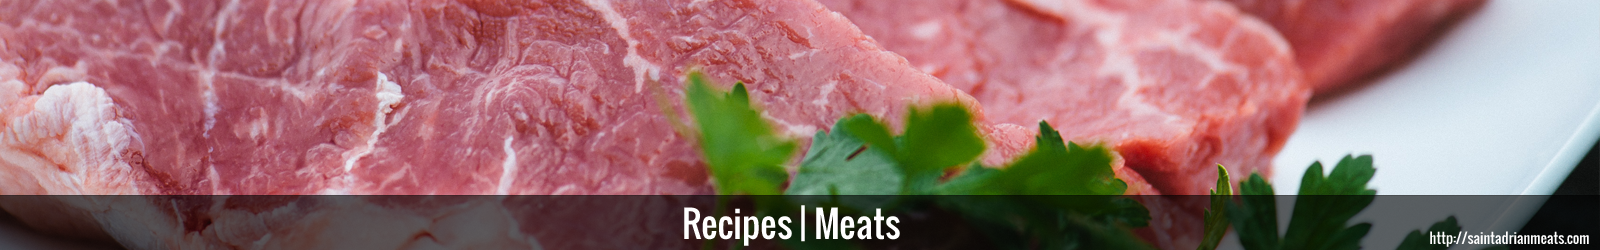 Recipes for meats | Saint Adrian Meats & Sausage | Lebanon, IN